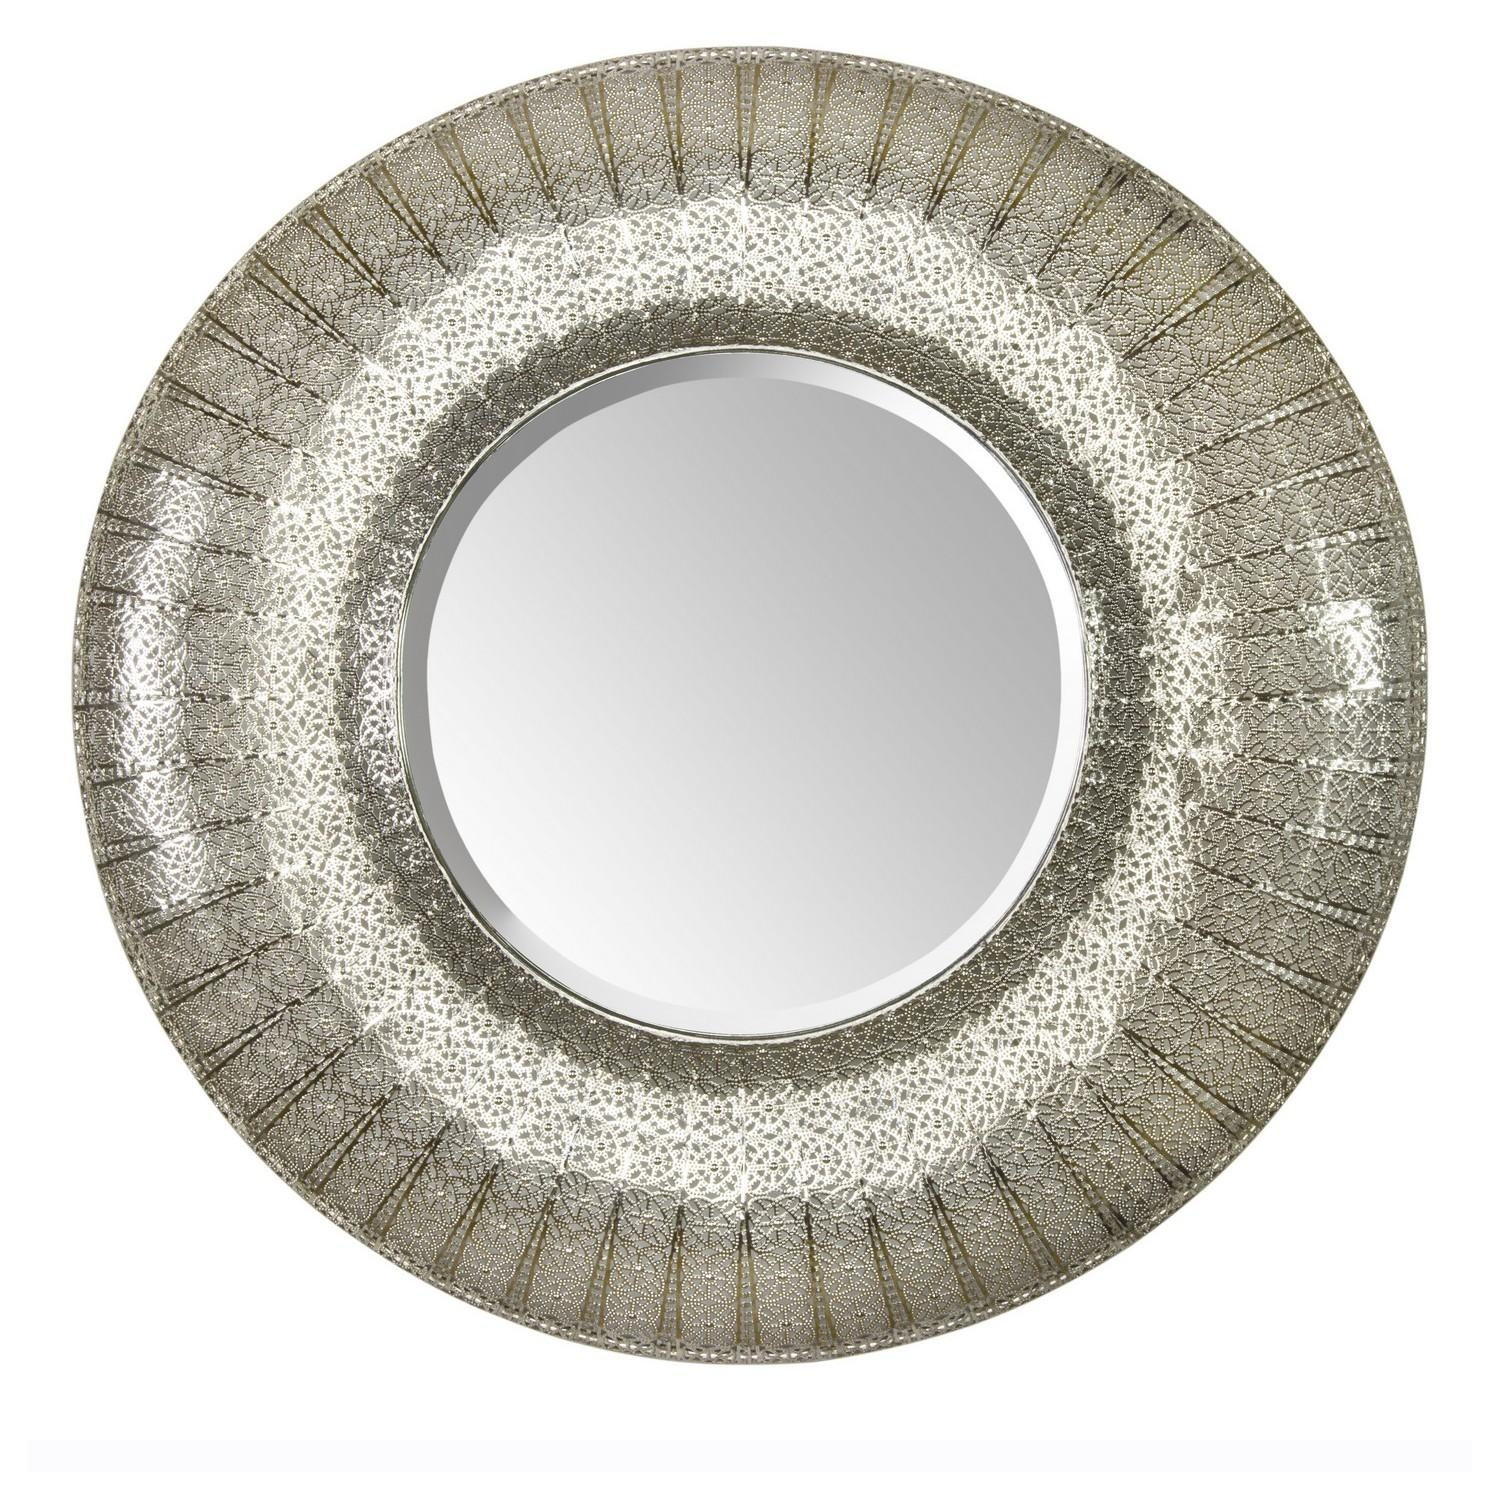 Large Circular Wall Mirrors 89 Beautiful Decoration Also Modern Throughout Large Circular Mirror (Image 9 of 20)